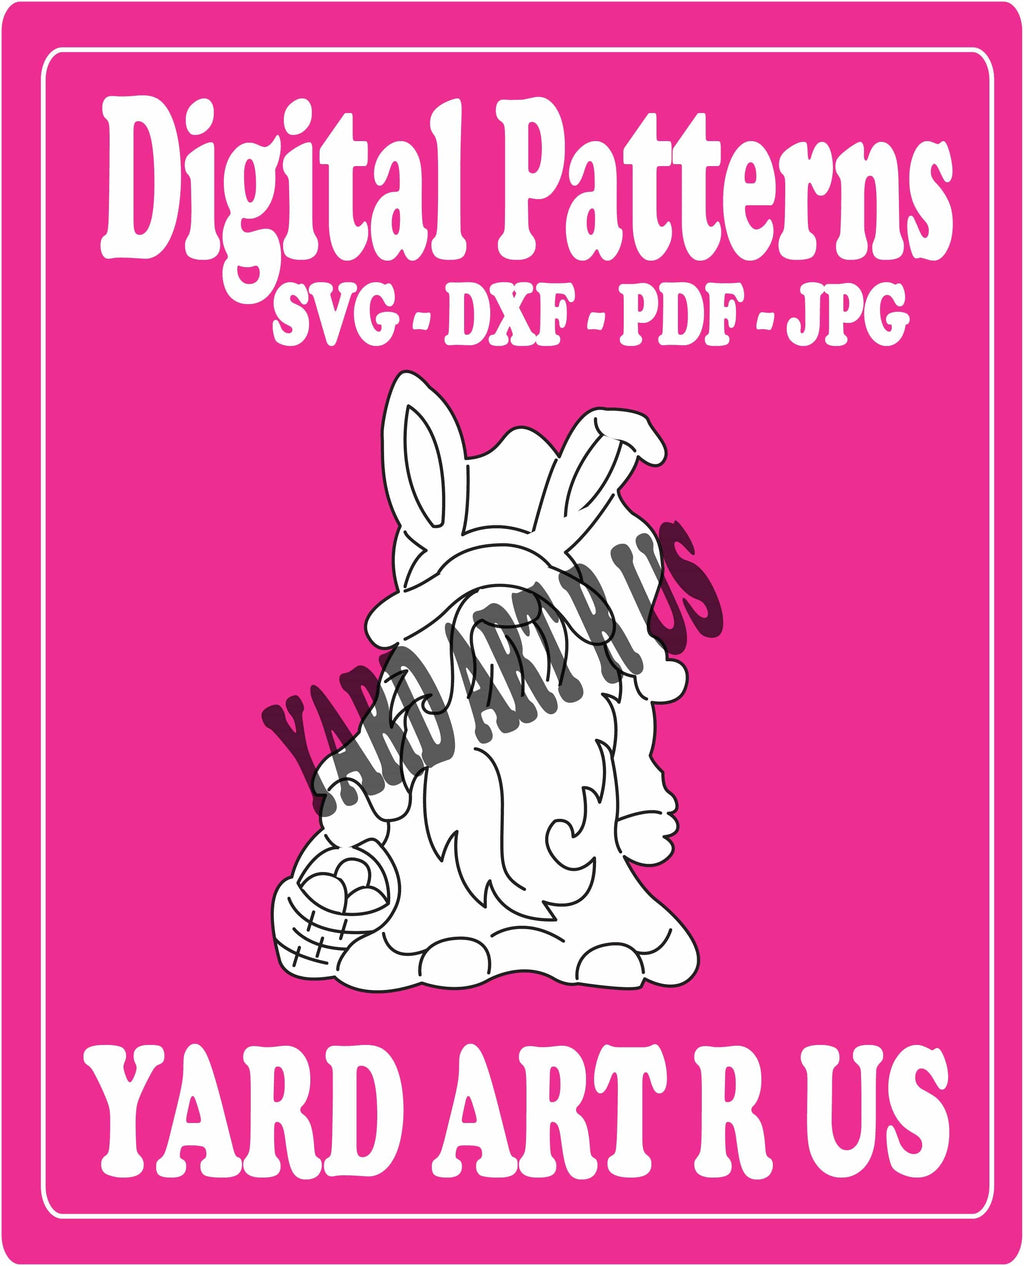 gnome bunny holdong basket digital pattern - SVG, DXF, PDF, and JPG file options